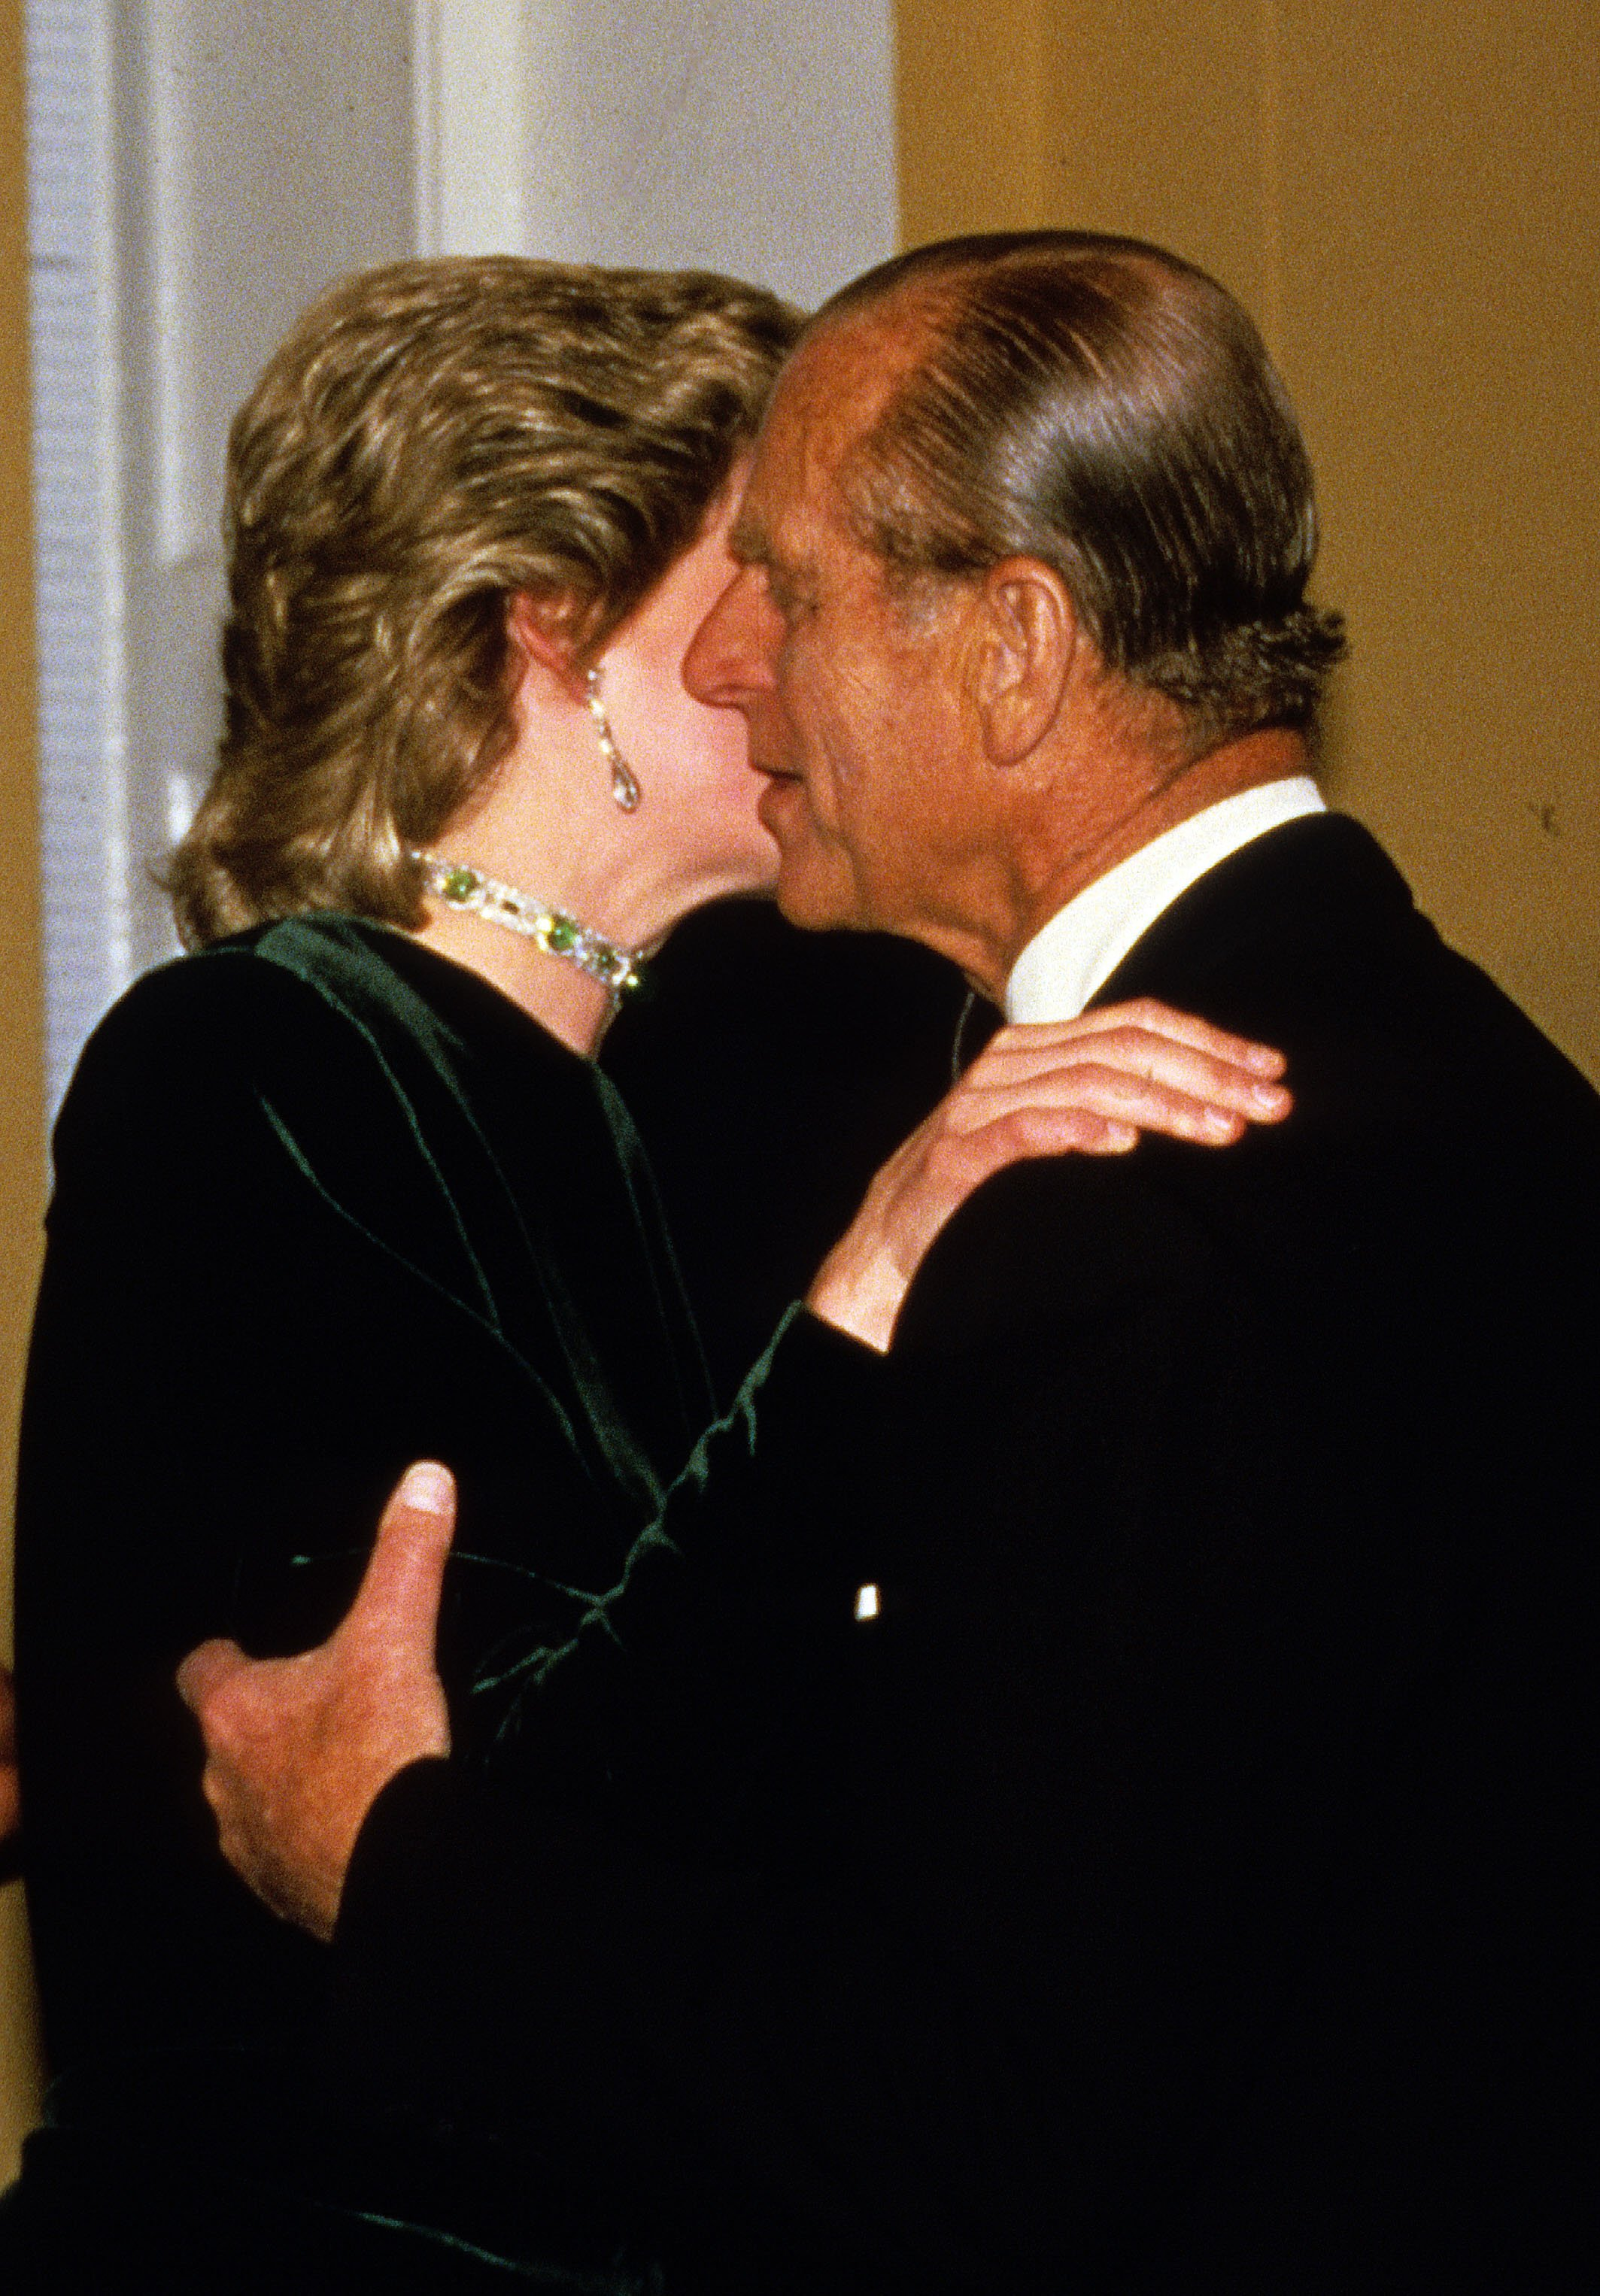 Prince Philip, Duke of Edinburgh receives a kiss from Diana, Princess of Wales in London   Photo: Getty Images